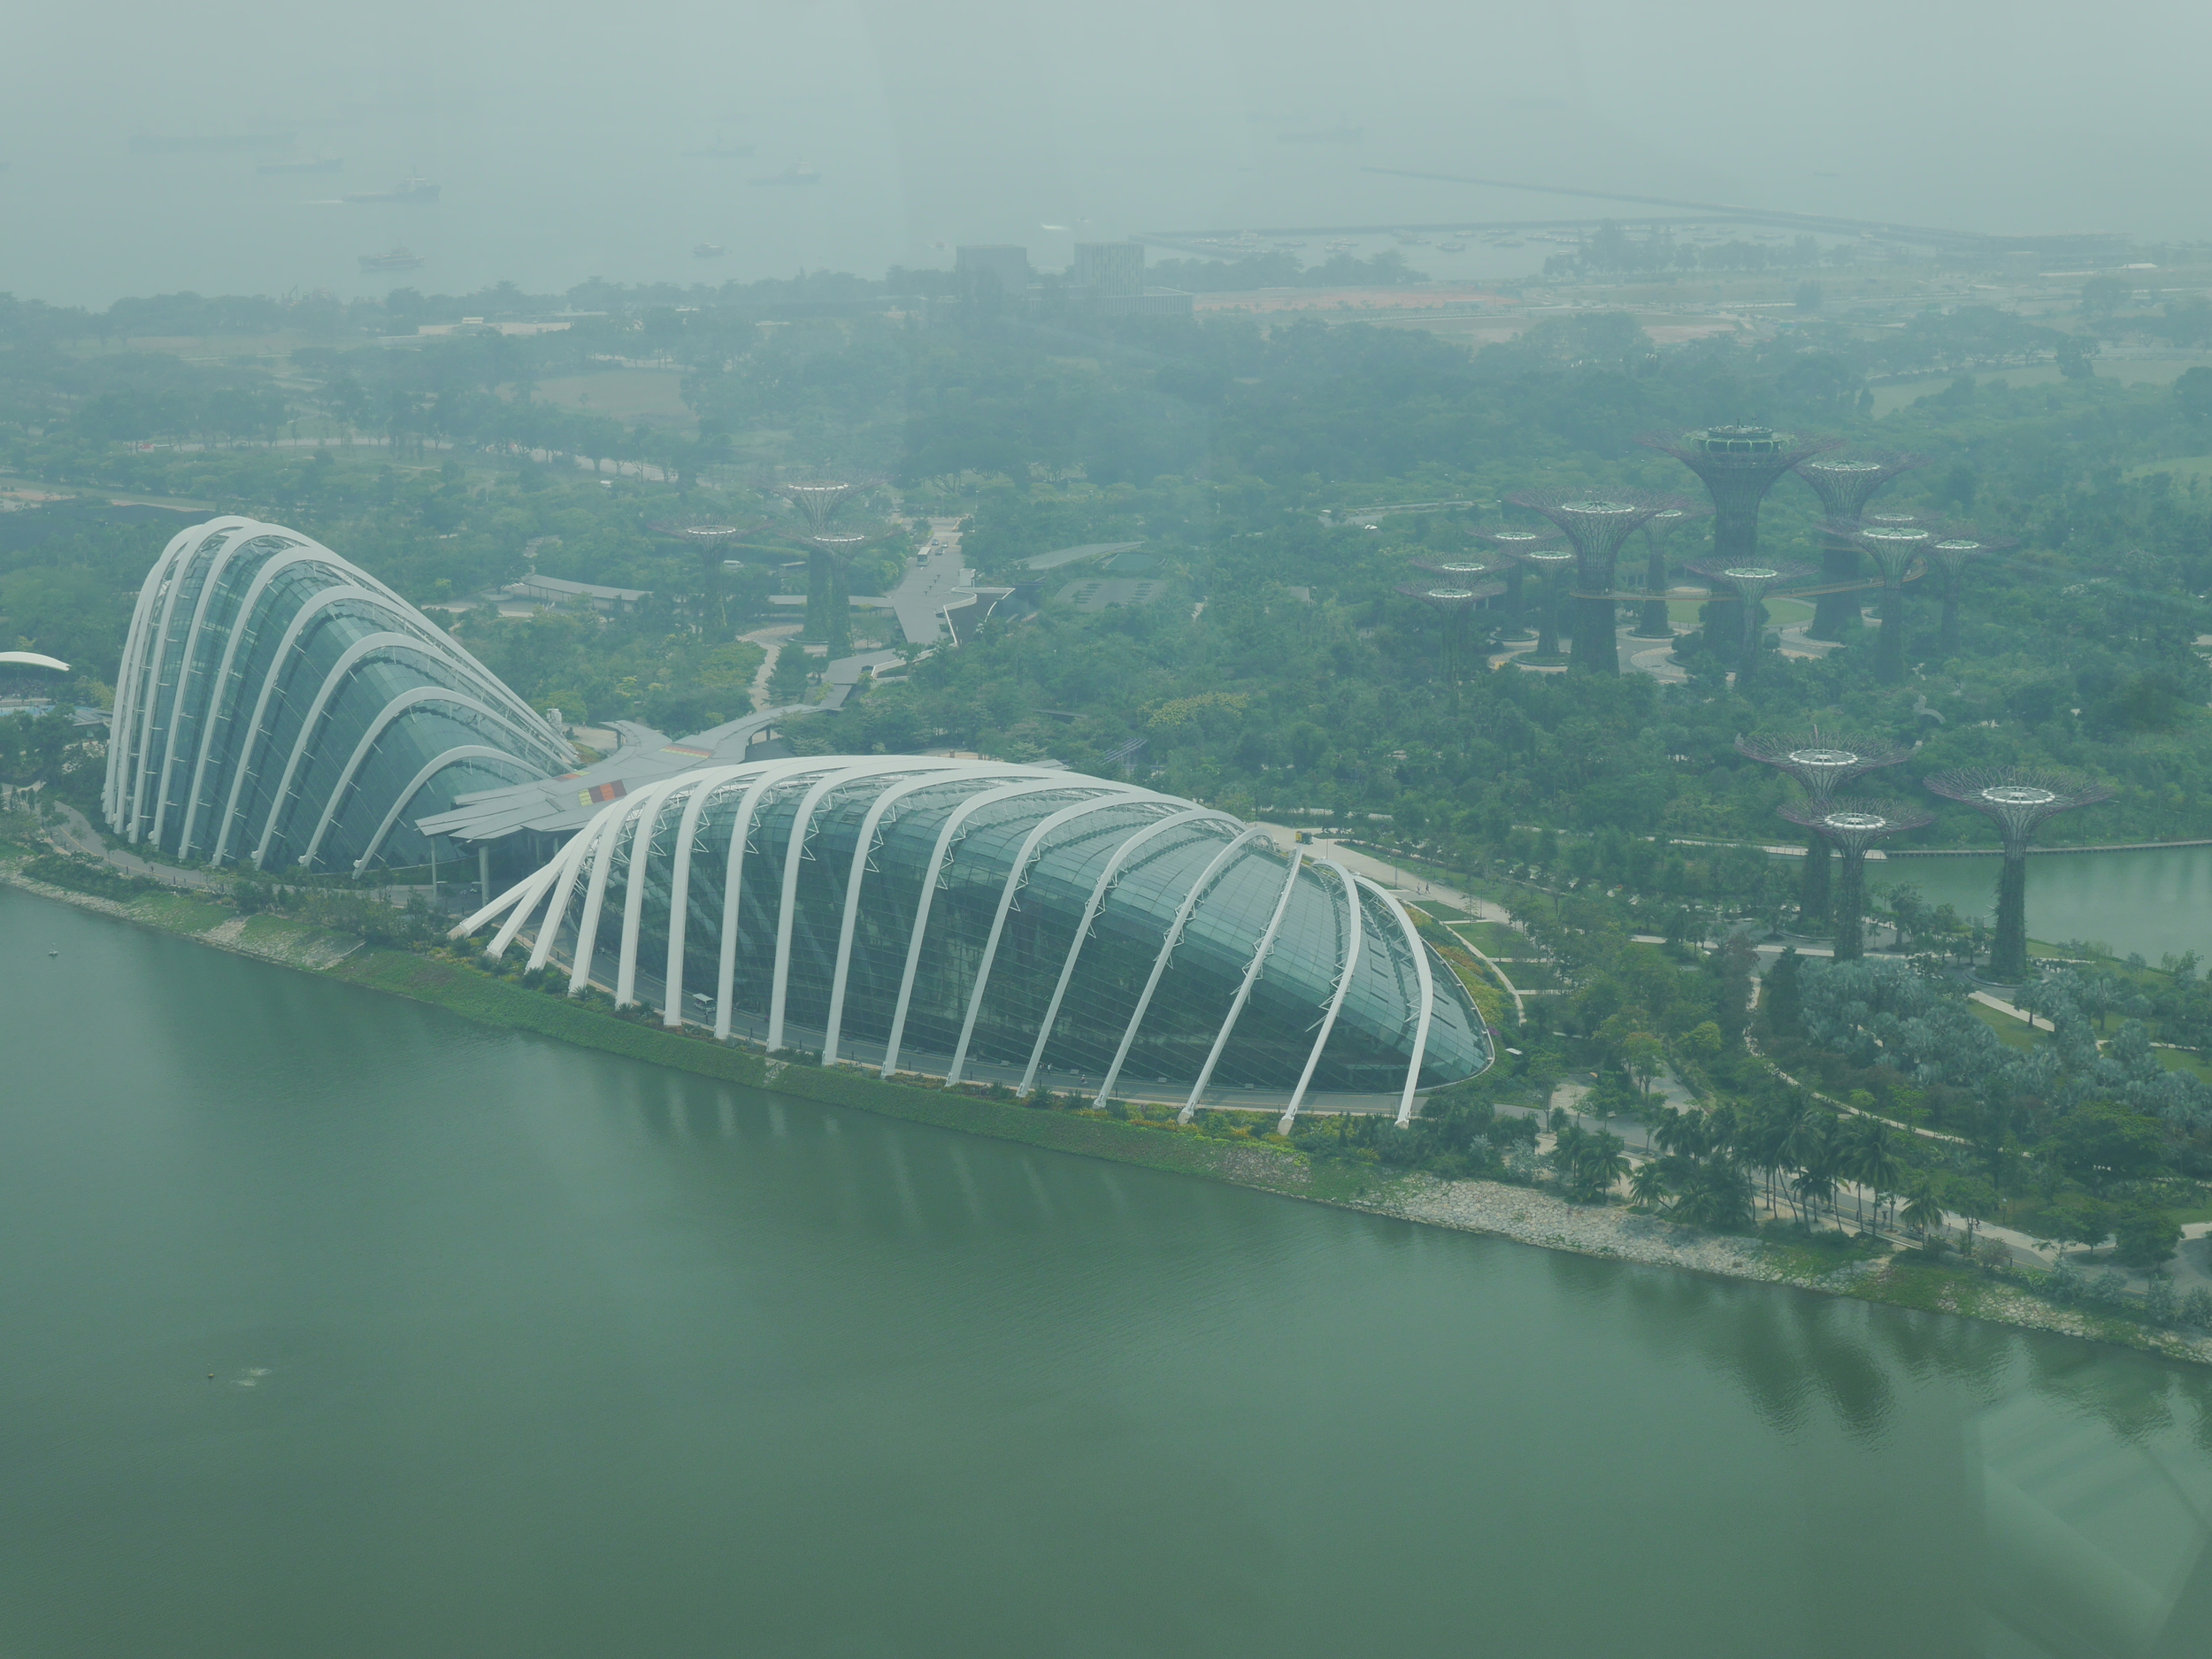 The Gardens by the Bay from above. Cloud Forest dome on the left, Flower Dome in the middle, and the Supertree Grove towards the back right.